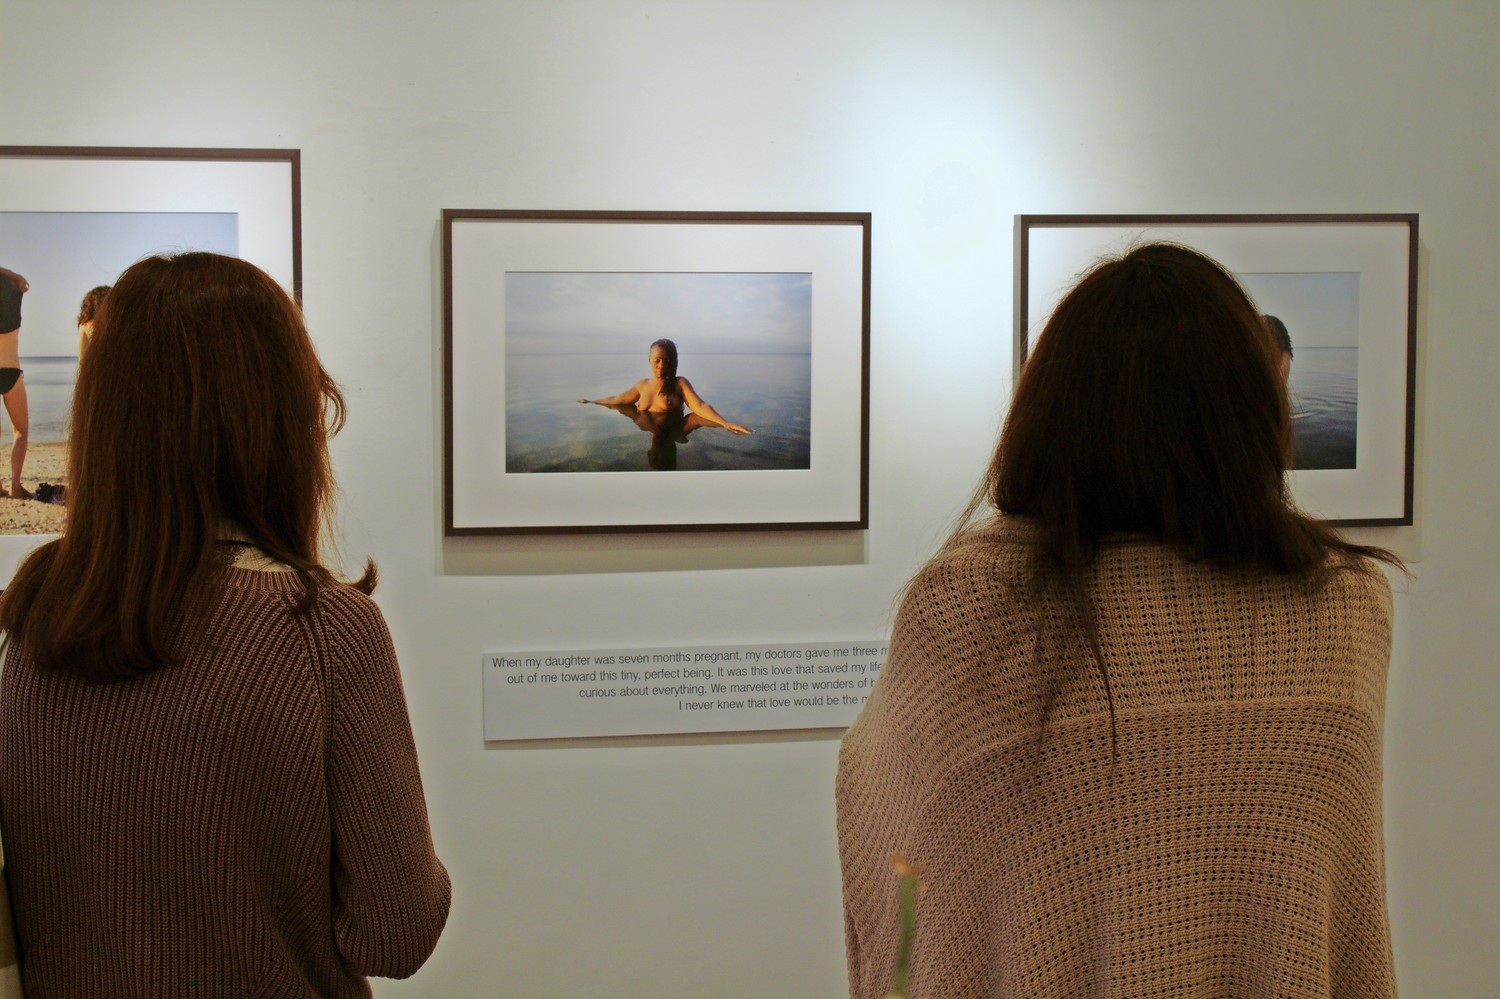 the FotoFoto gallery showcased Pine and Miana Jun's artwork through Sept. 29. The women featured in the photos took part in workshops that allowed them to share their feelings and develop relationships with one another.